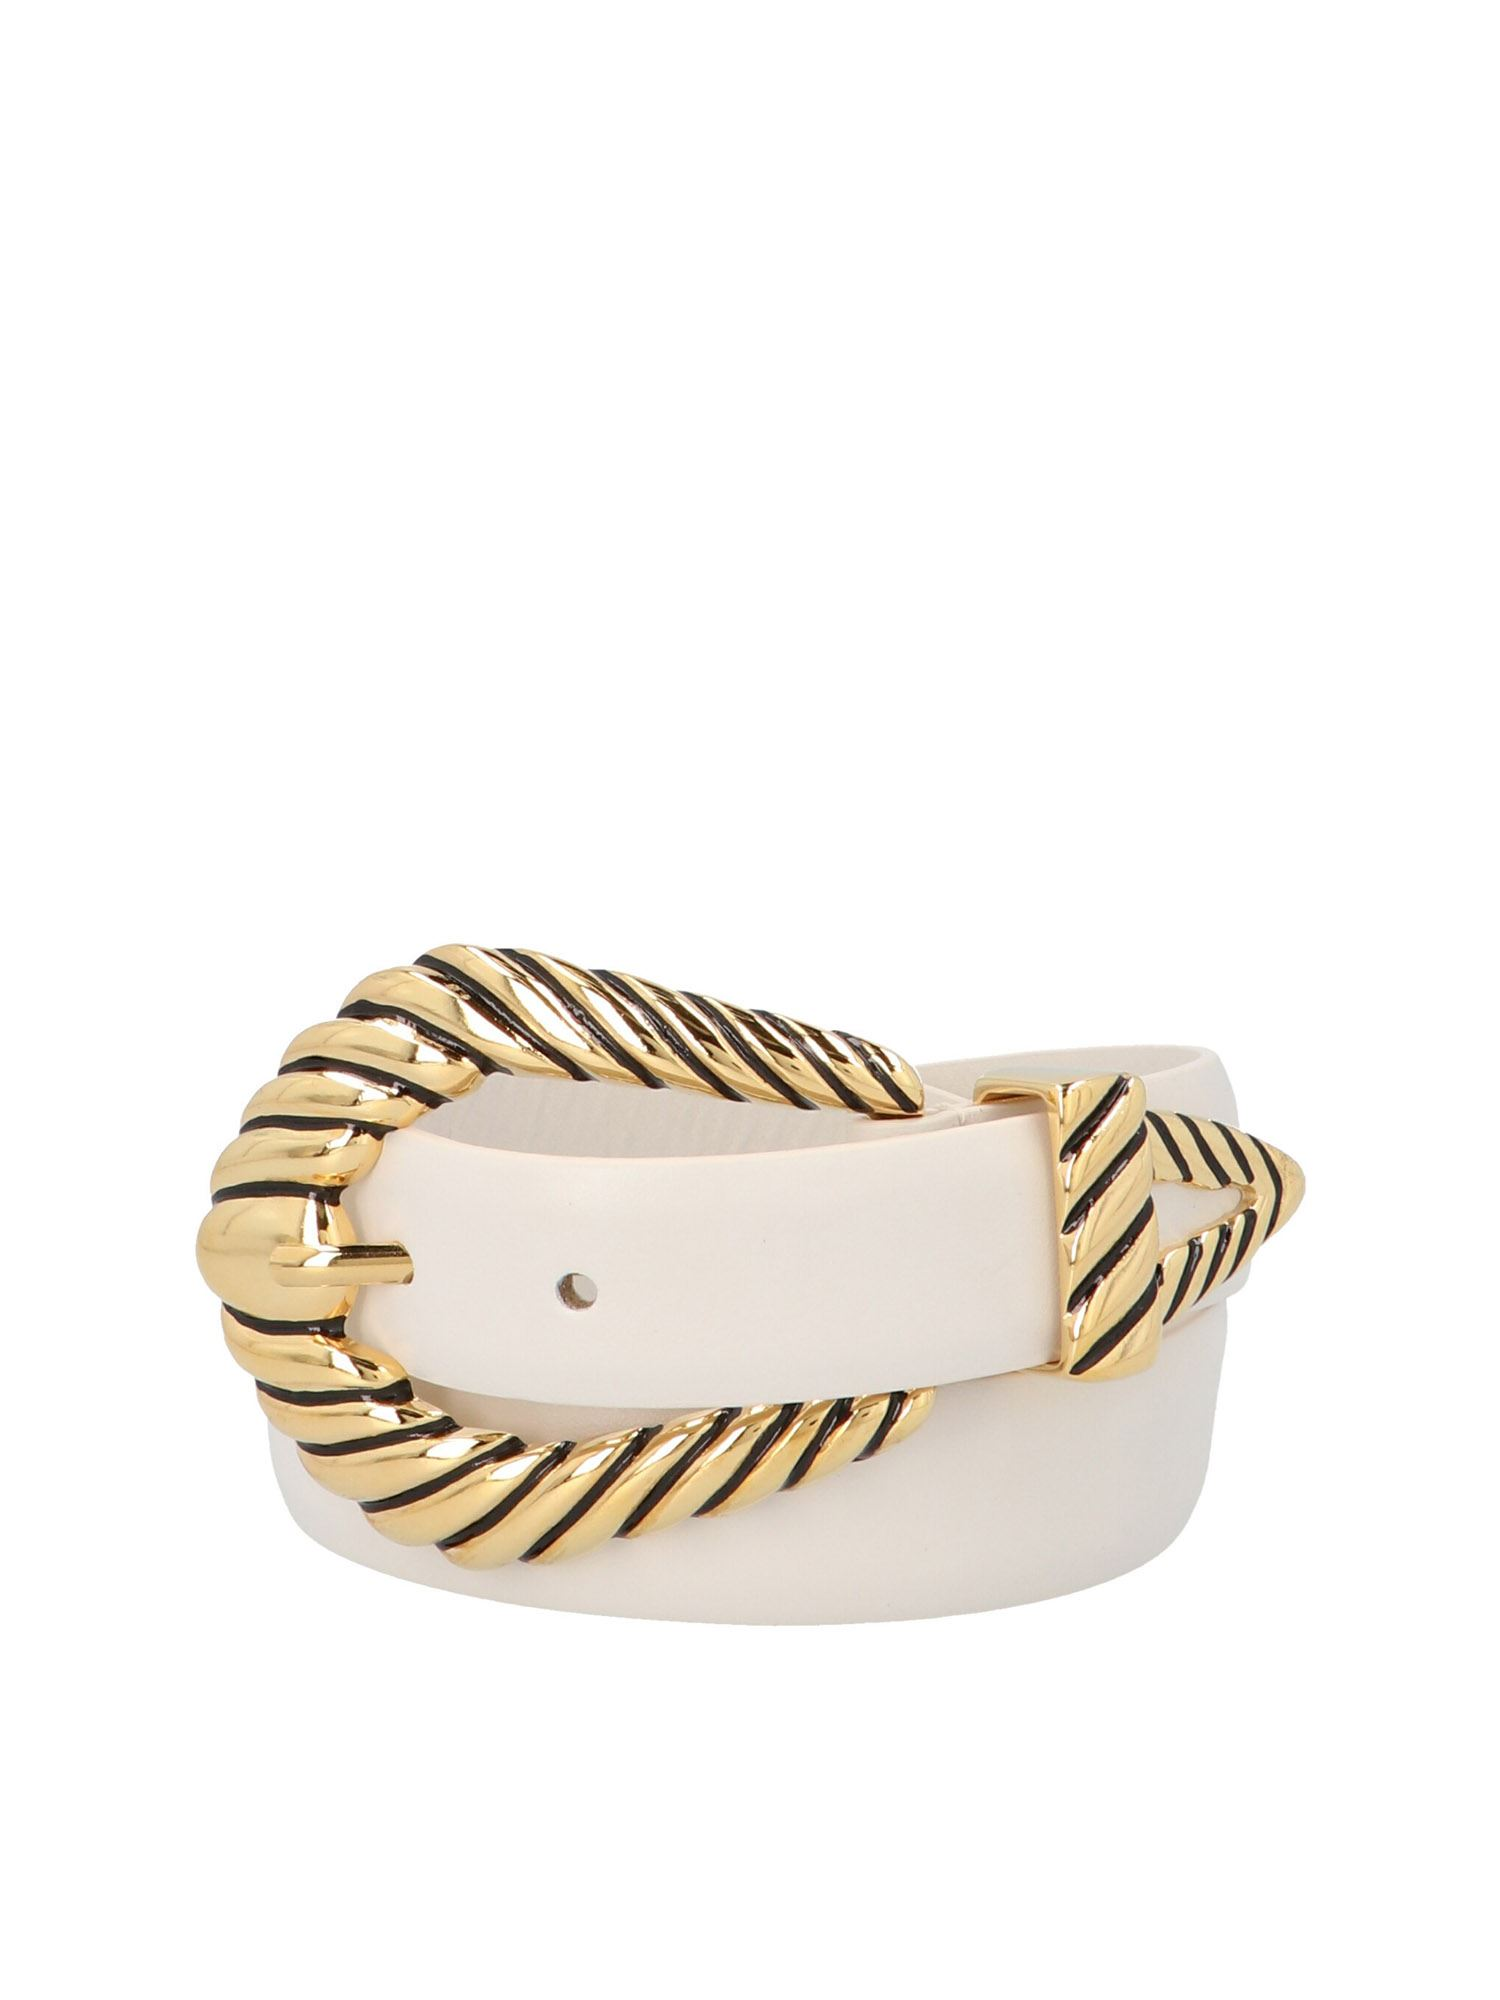 Alberta Ferretti ALBERTA FERRETTI BOXED BUCKLE BELT IN WHITE AND GOLD